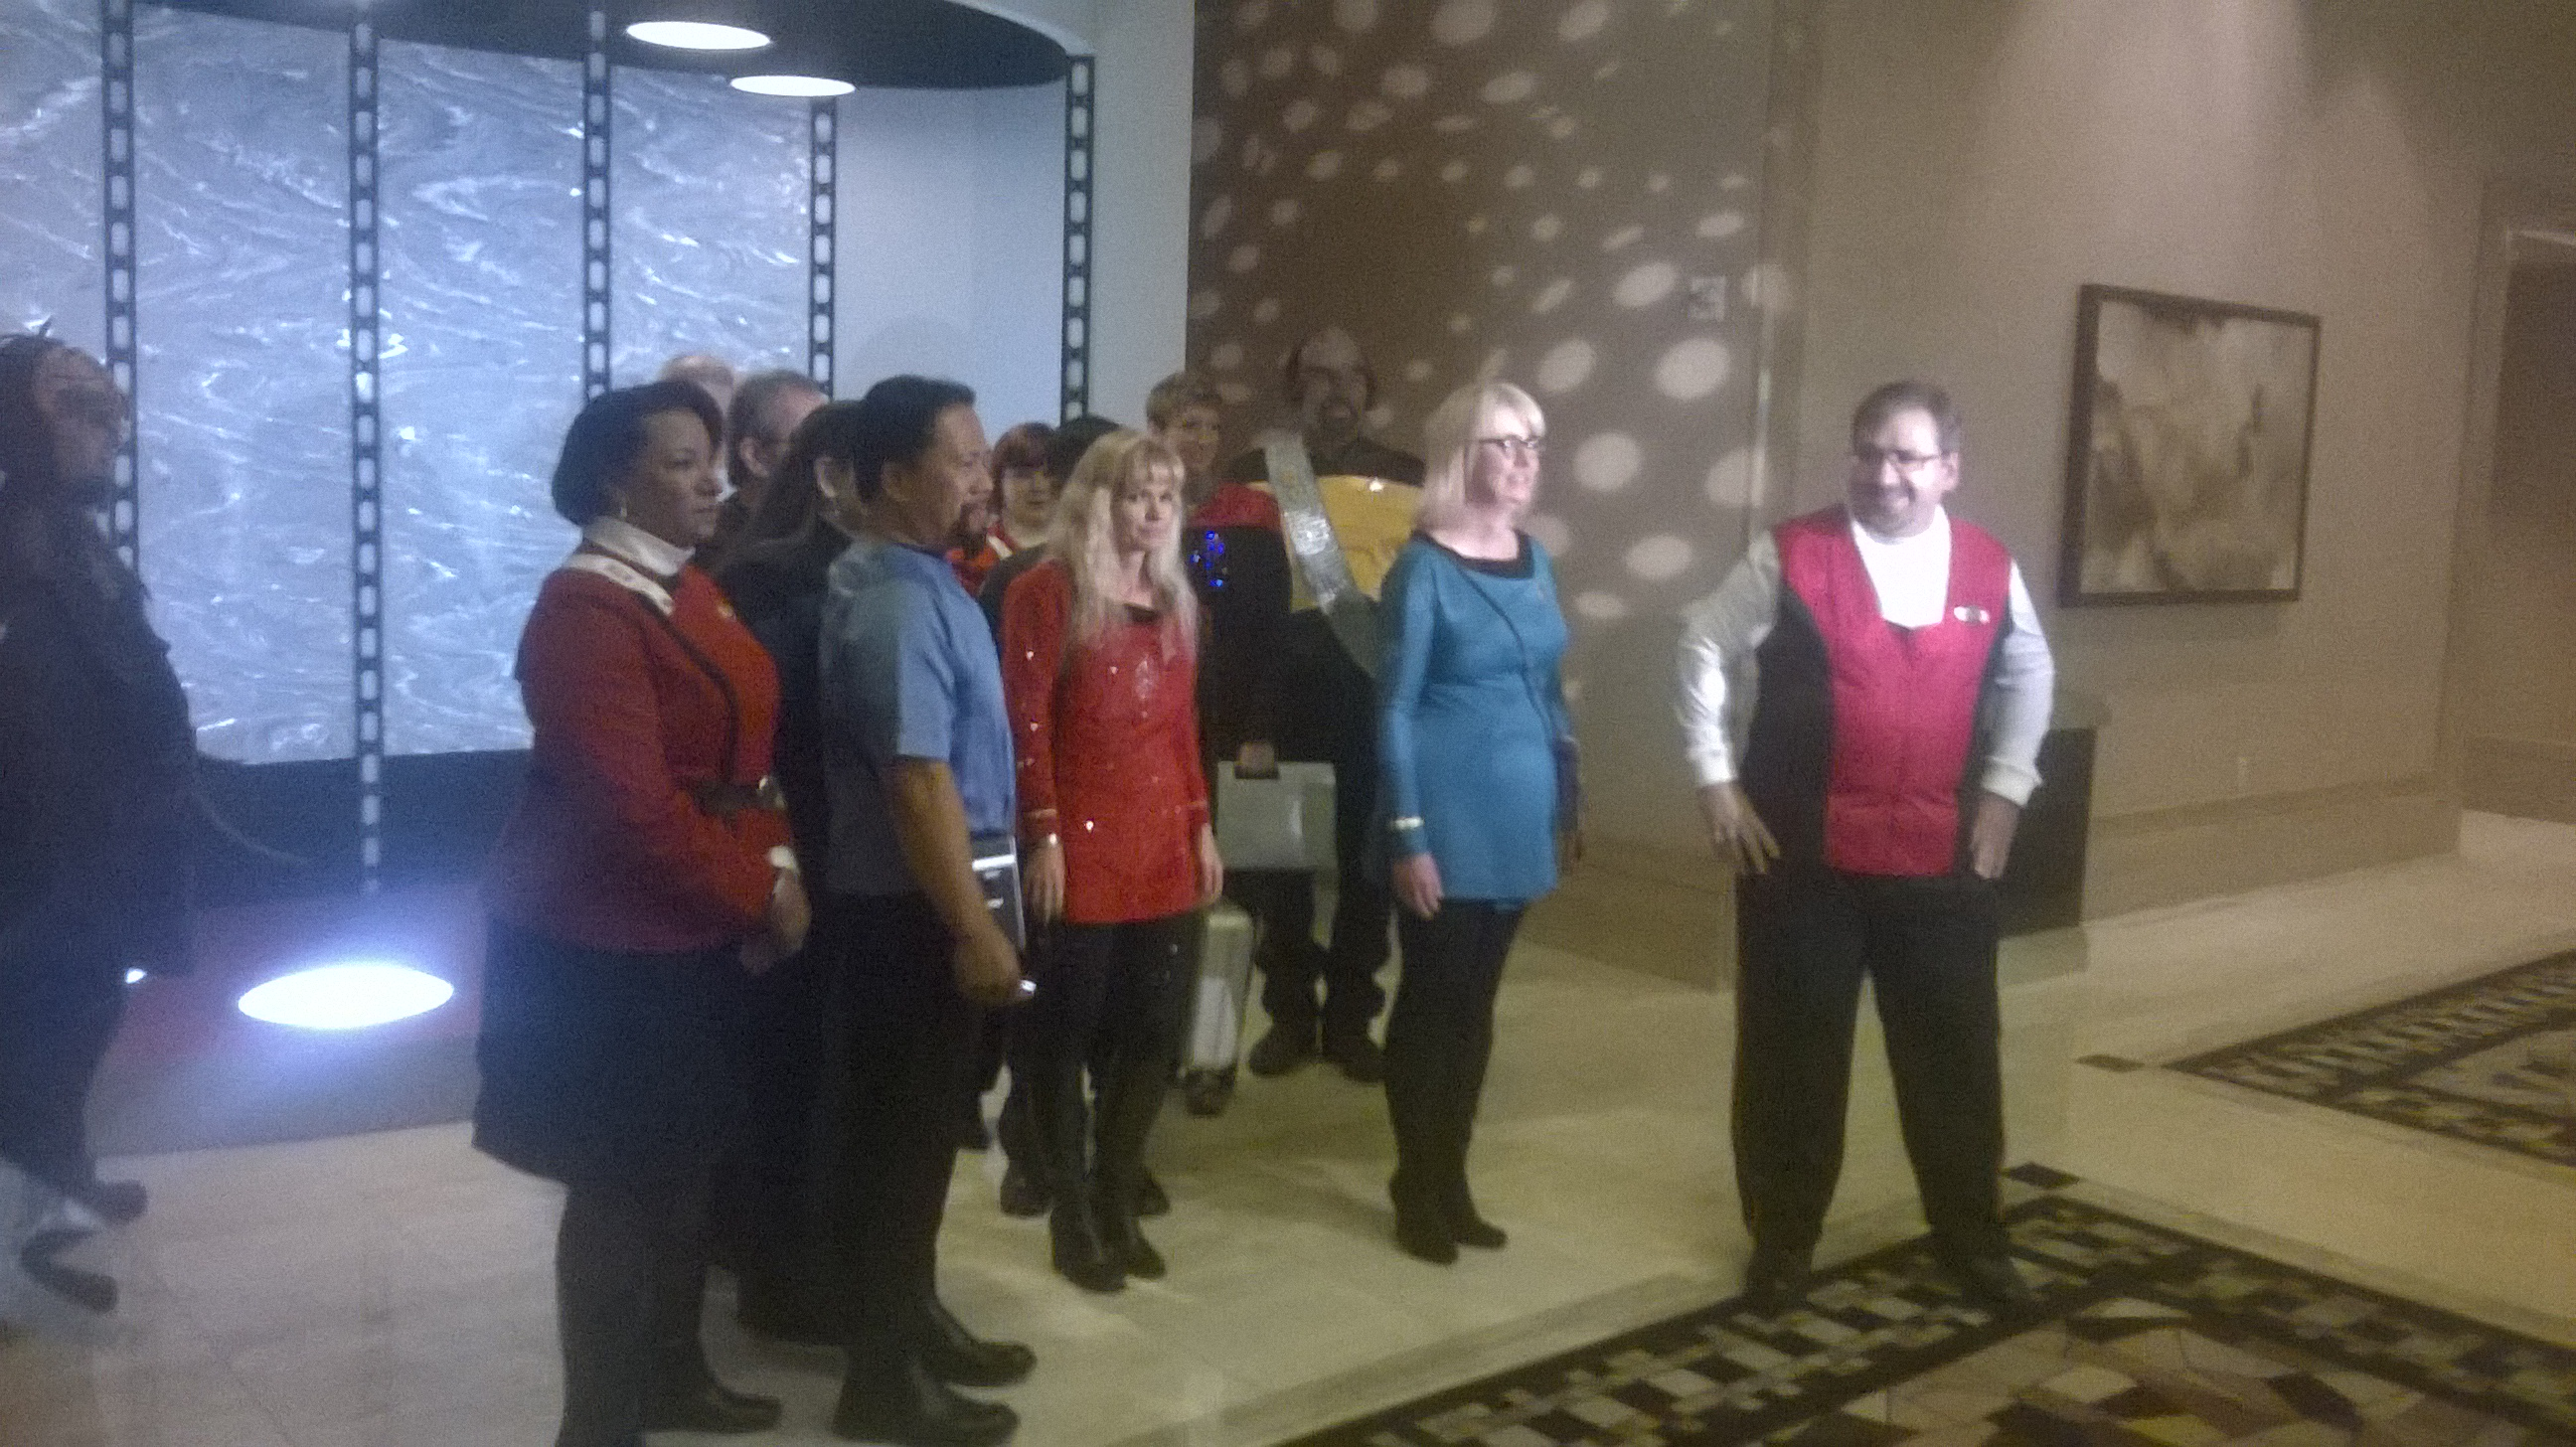 STLV Wedding Party Photo Op